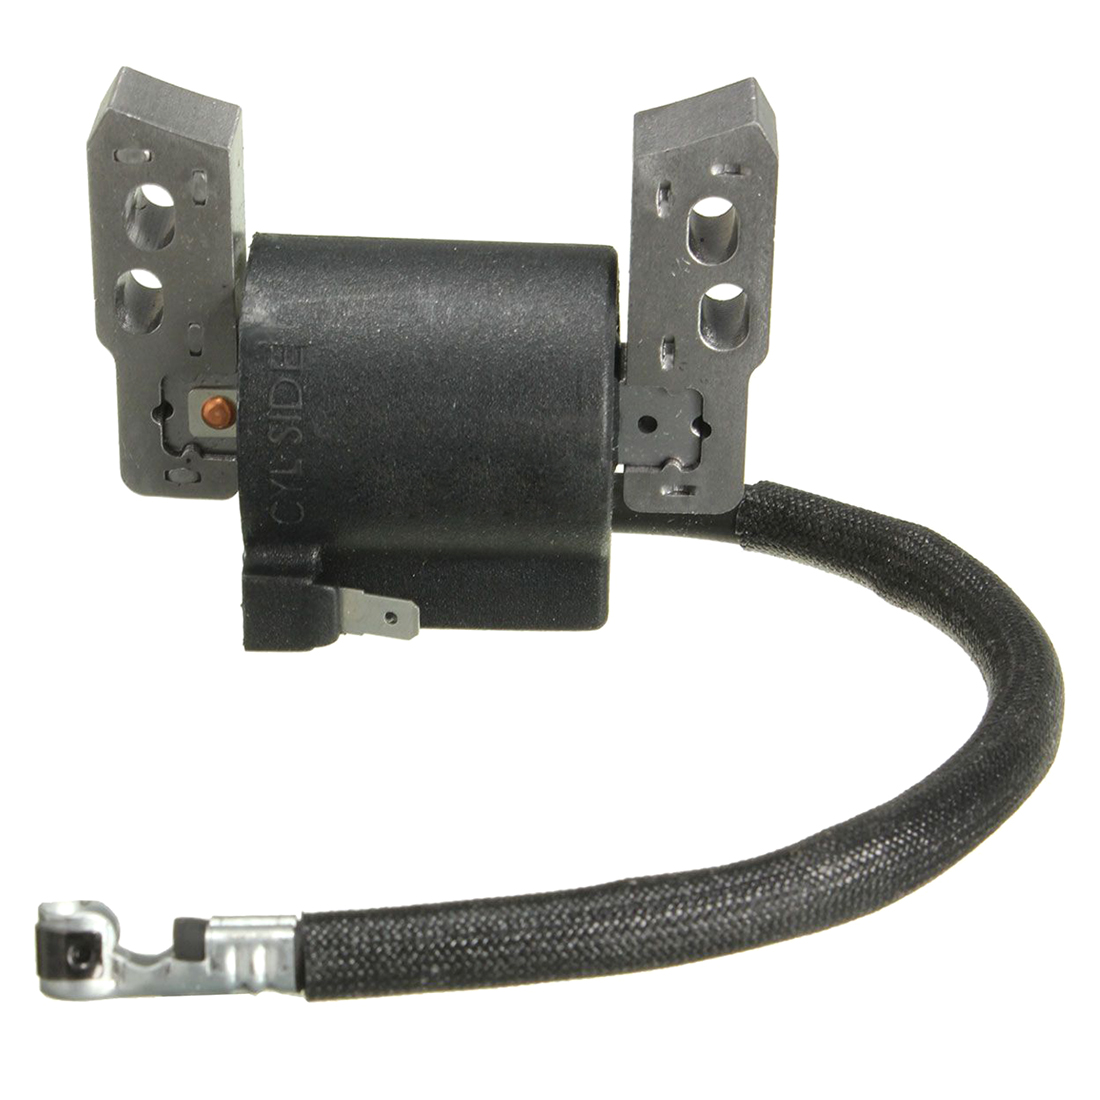 EDFY Lawn Electronic Ignition Coil For Briggs & Stratton 695711 802574 796964 Black